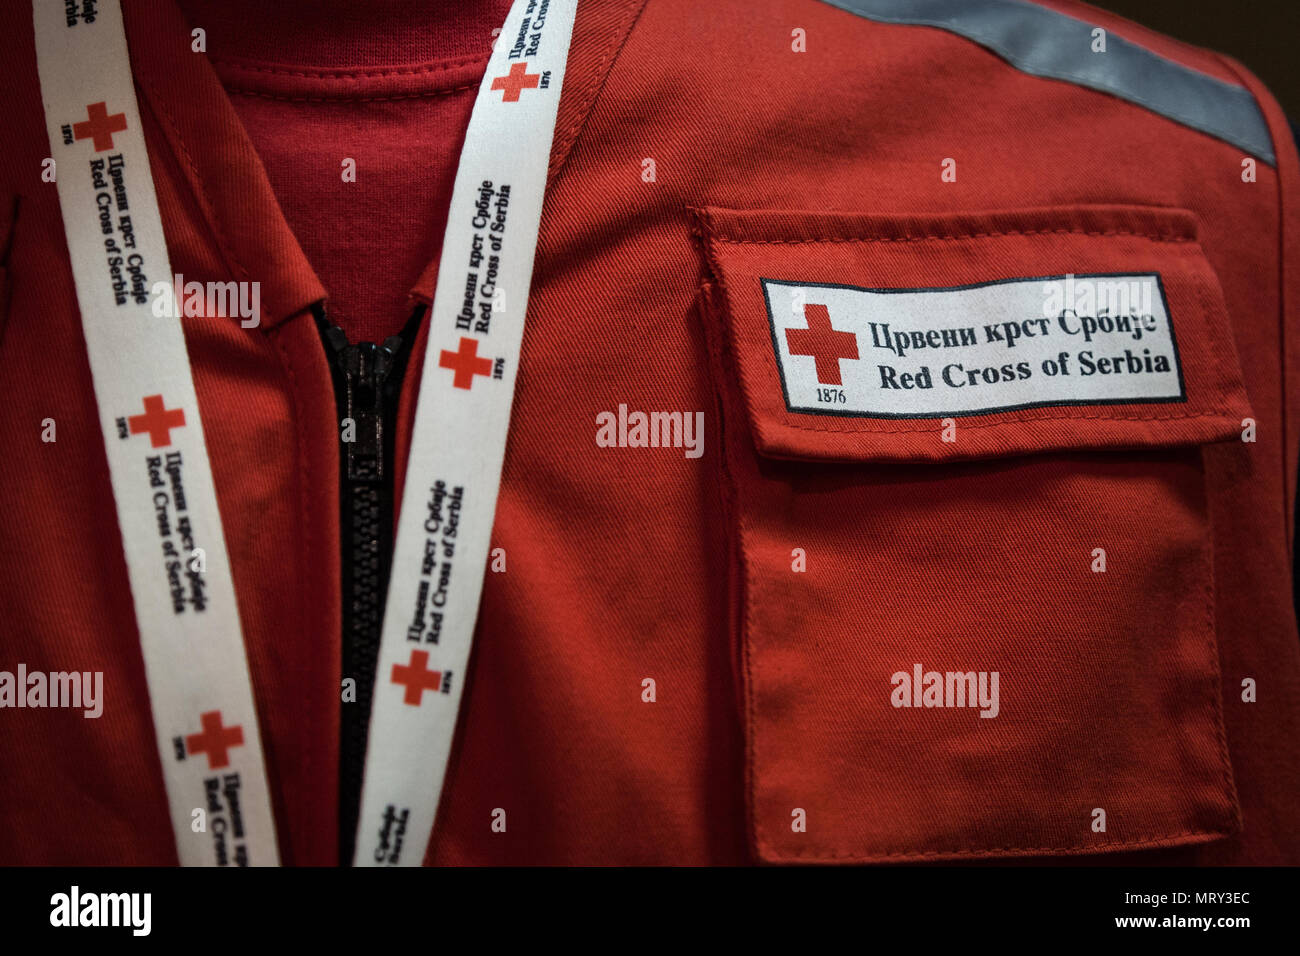 BELGRADE, SERBIA - MAY 19, 2018: Detail of Red Cross of Serbia uniform (Crveni Krst Srbije) with its distinctive logo. It is a humanitarian organisati Stock Photo